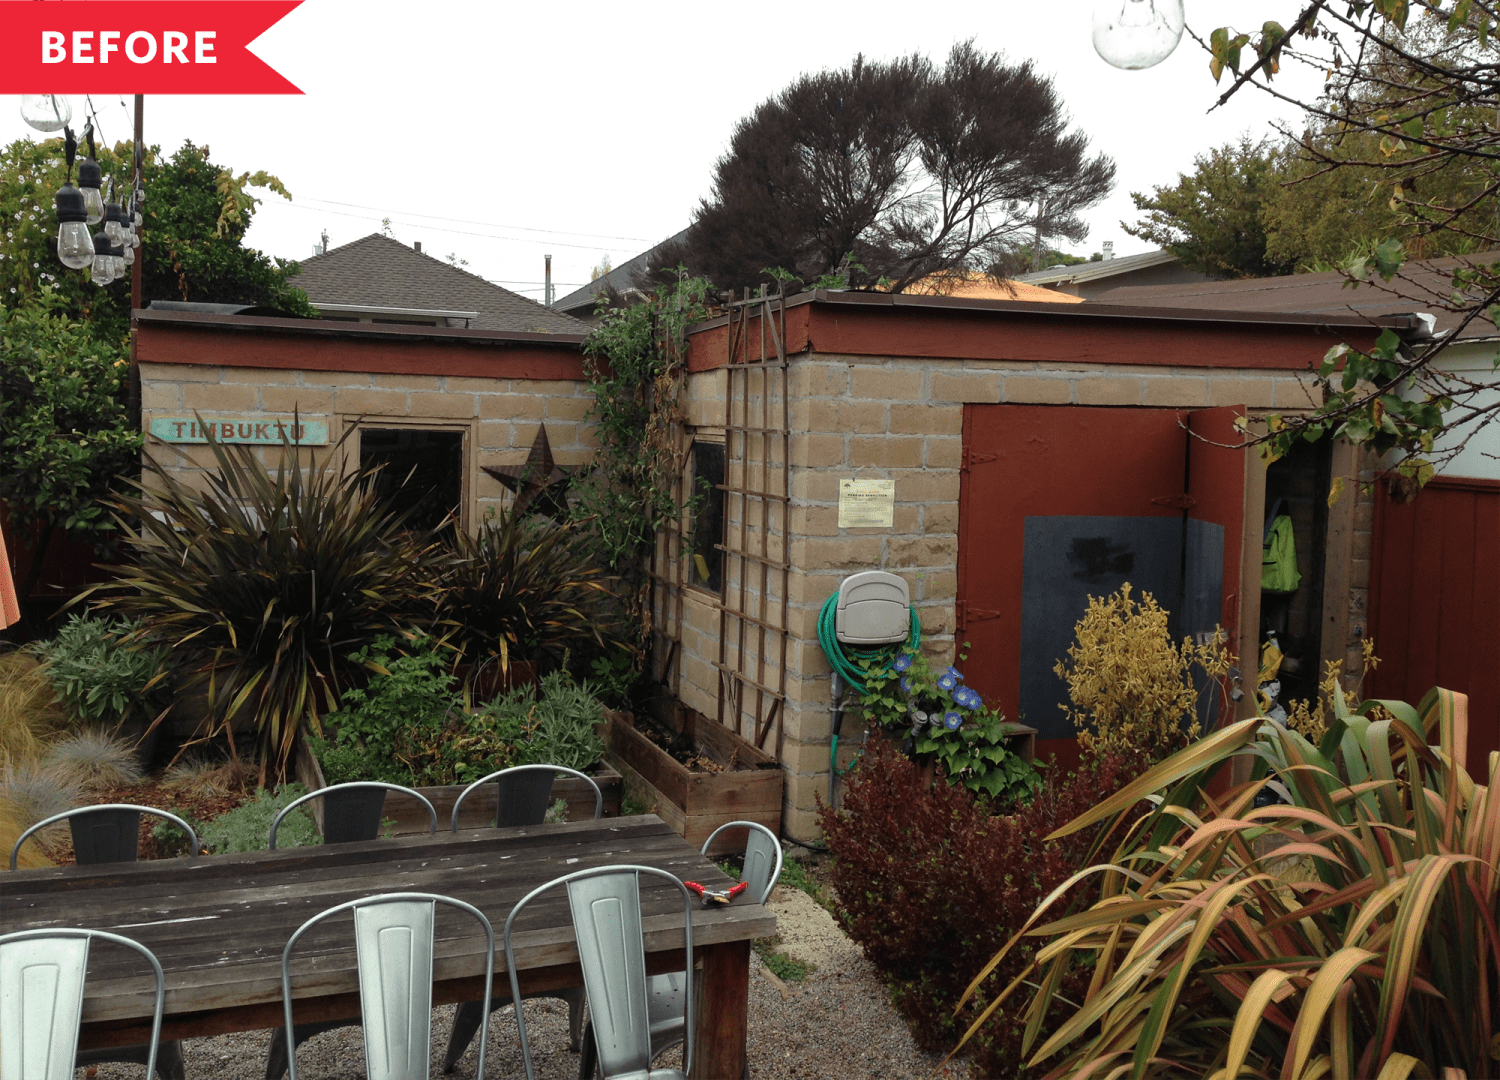 Before & After: A Cinder Block Garage Turned Gorgeous 280-Square-Foot Backyard ADU